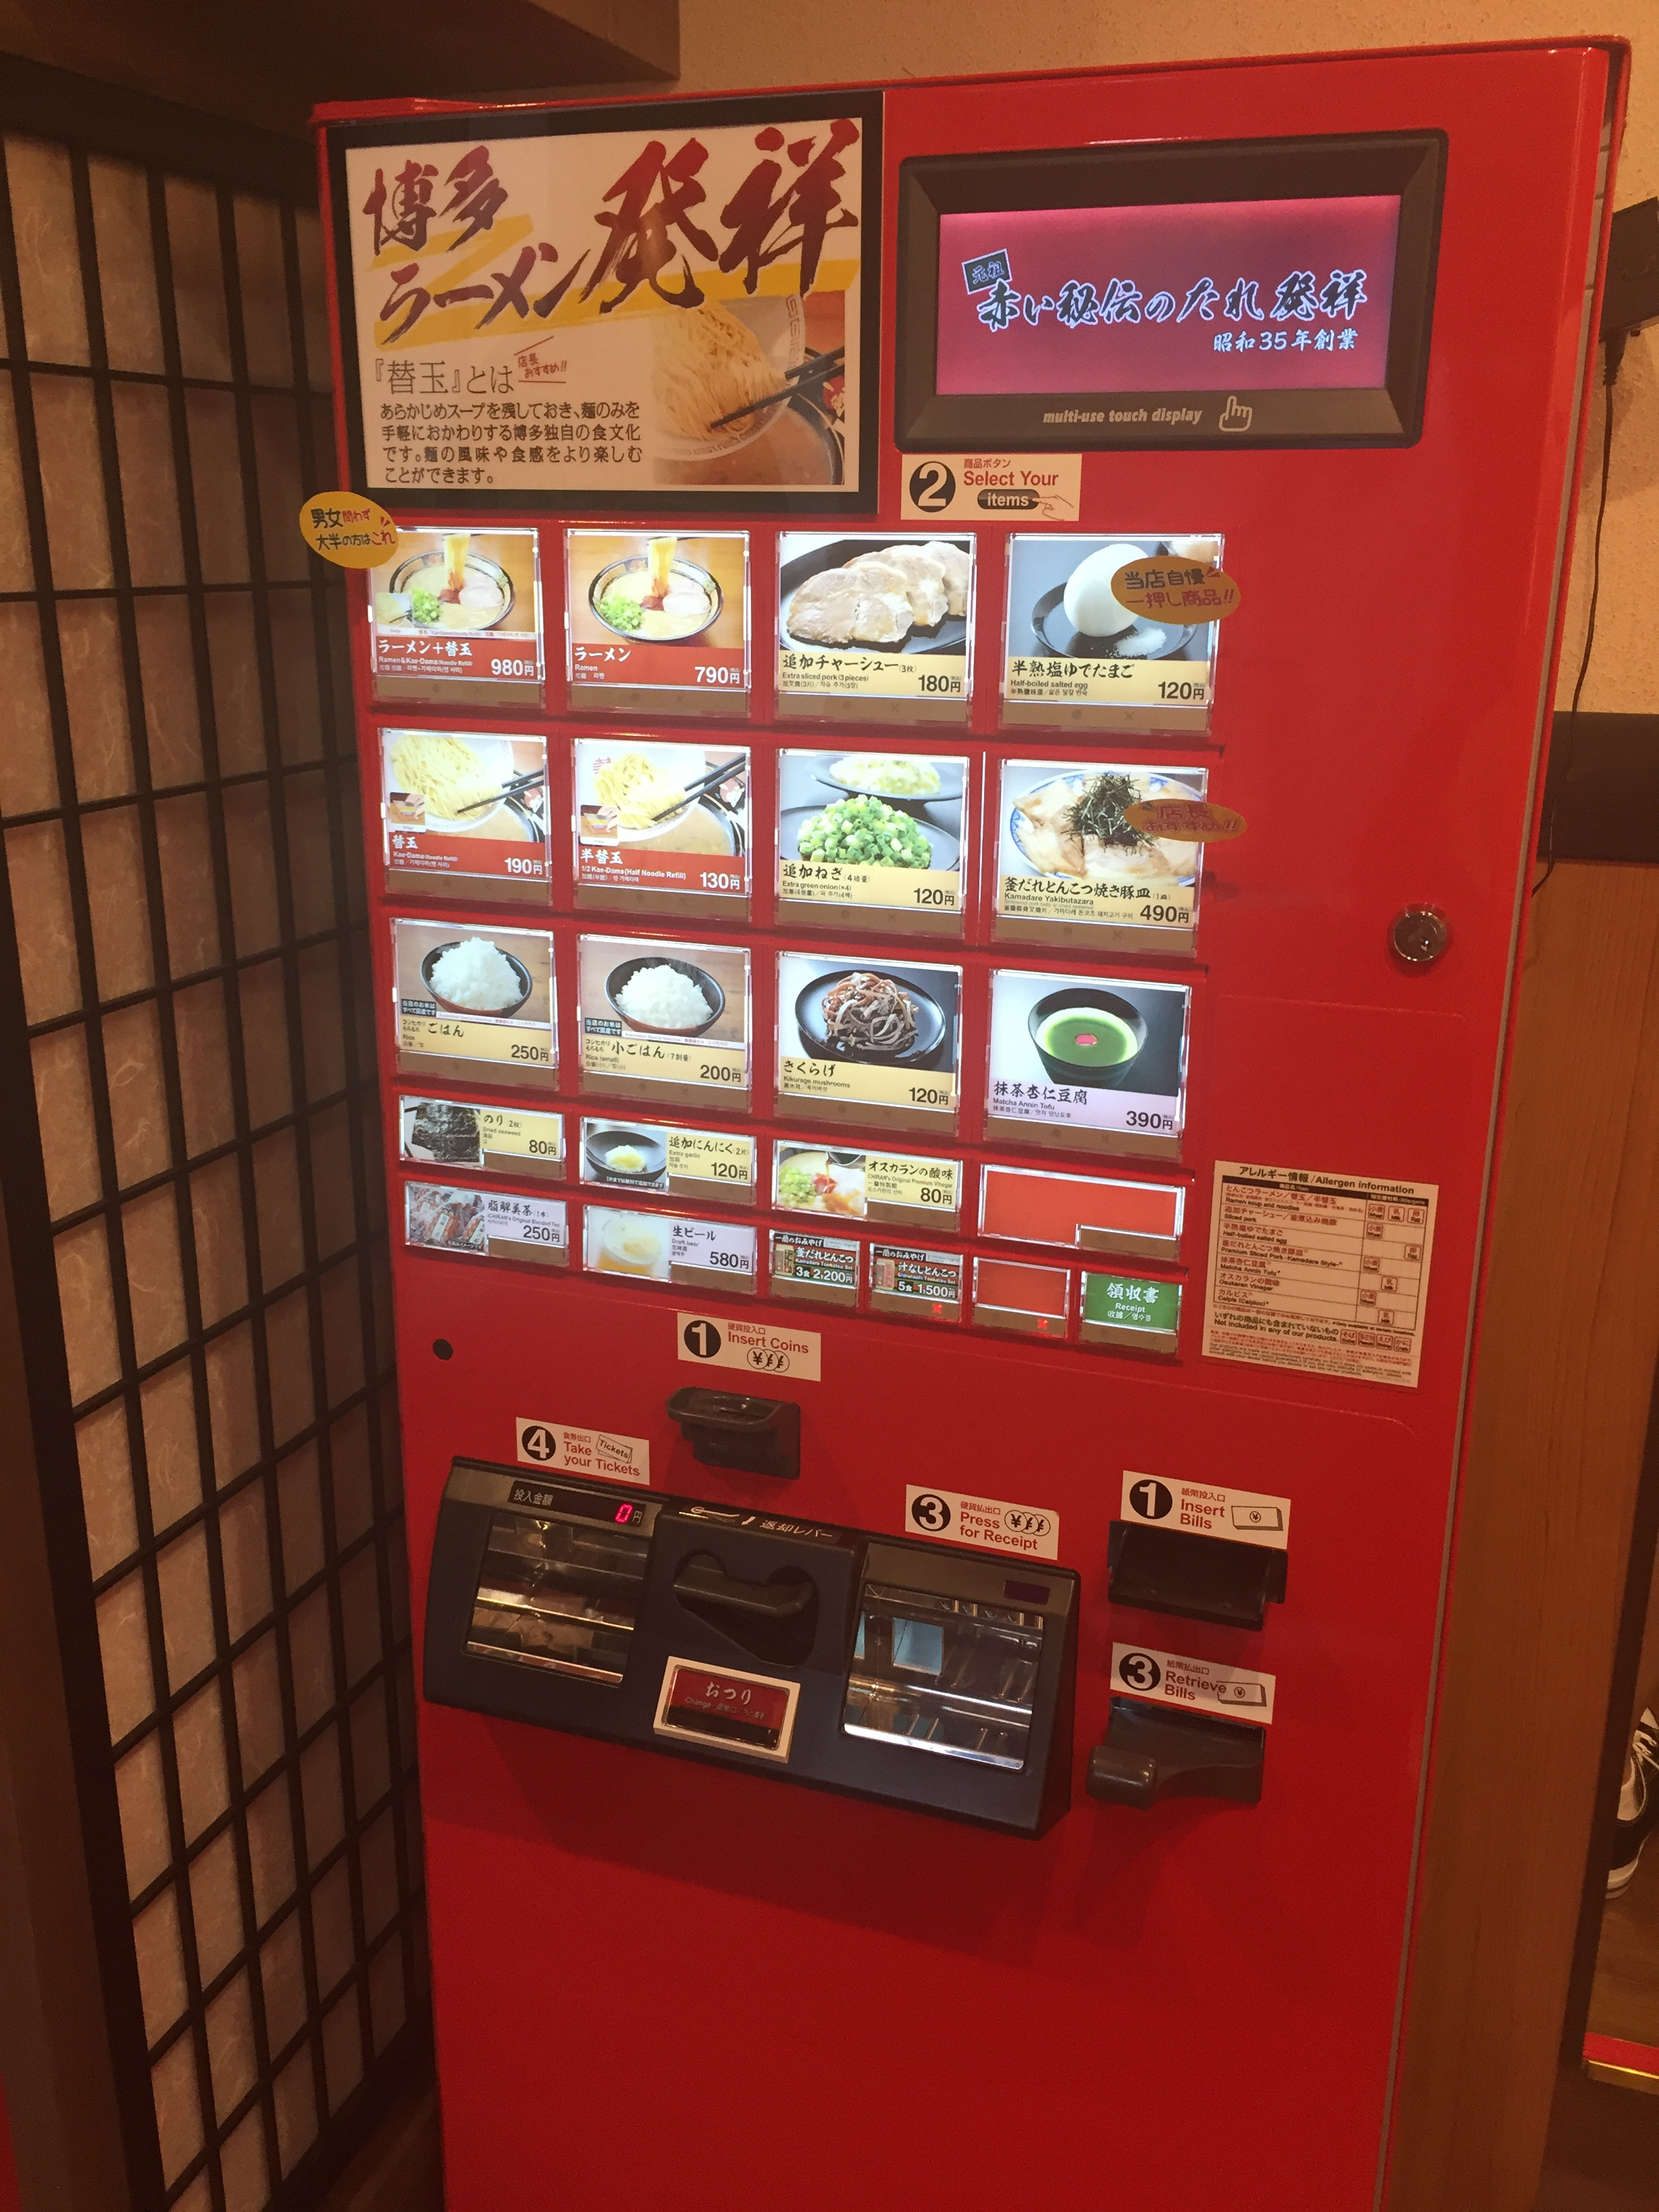 Ichiran Ramen Restaurant - Ticket Machine